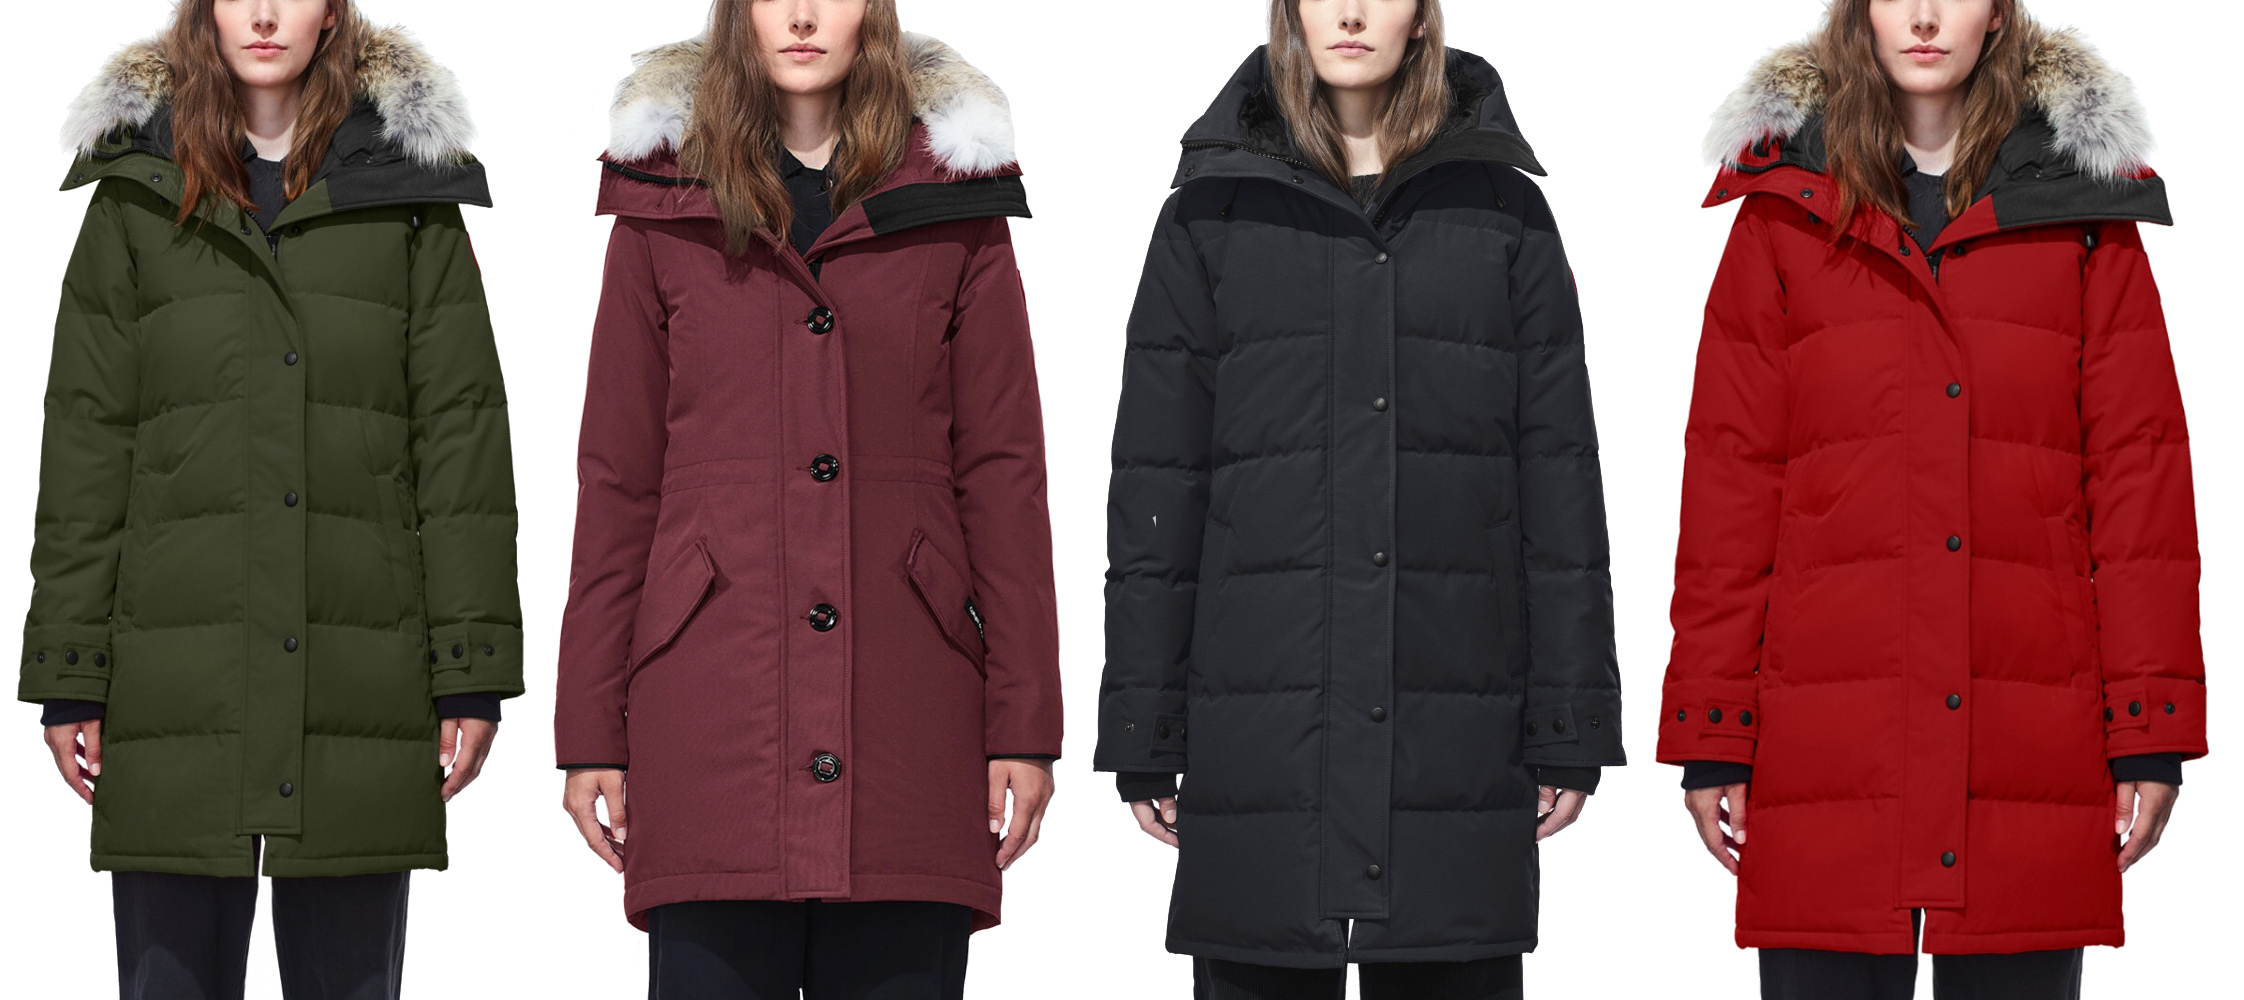 CANADA GOOSE women's collection